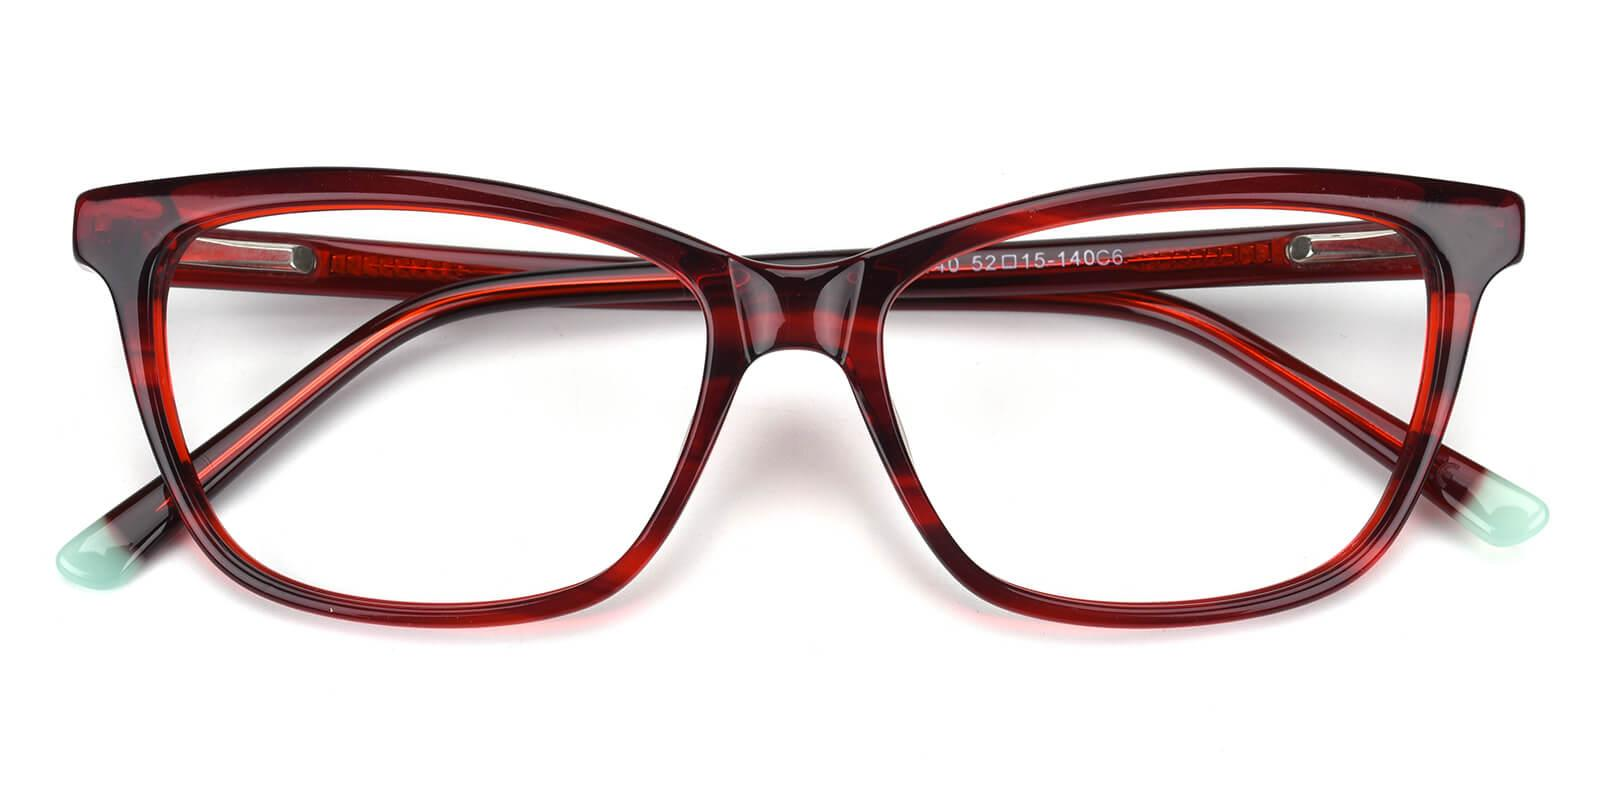 Ezra-Red-Cat-Acetate-Eyeglasses-detail